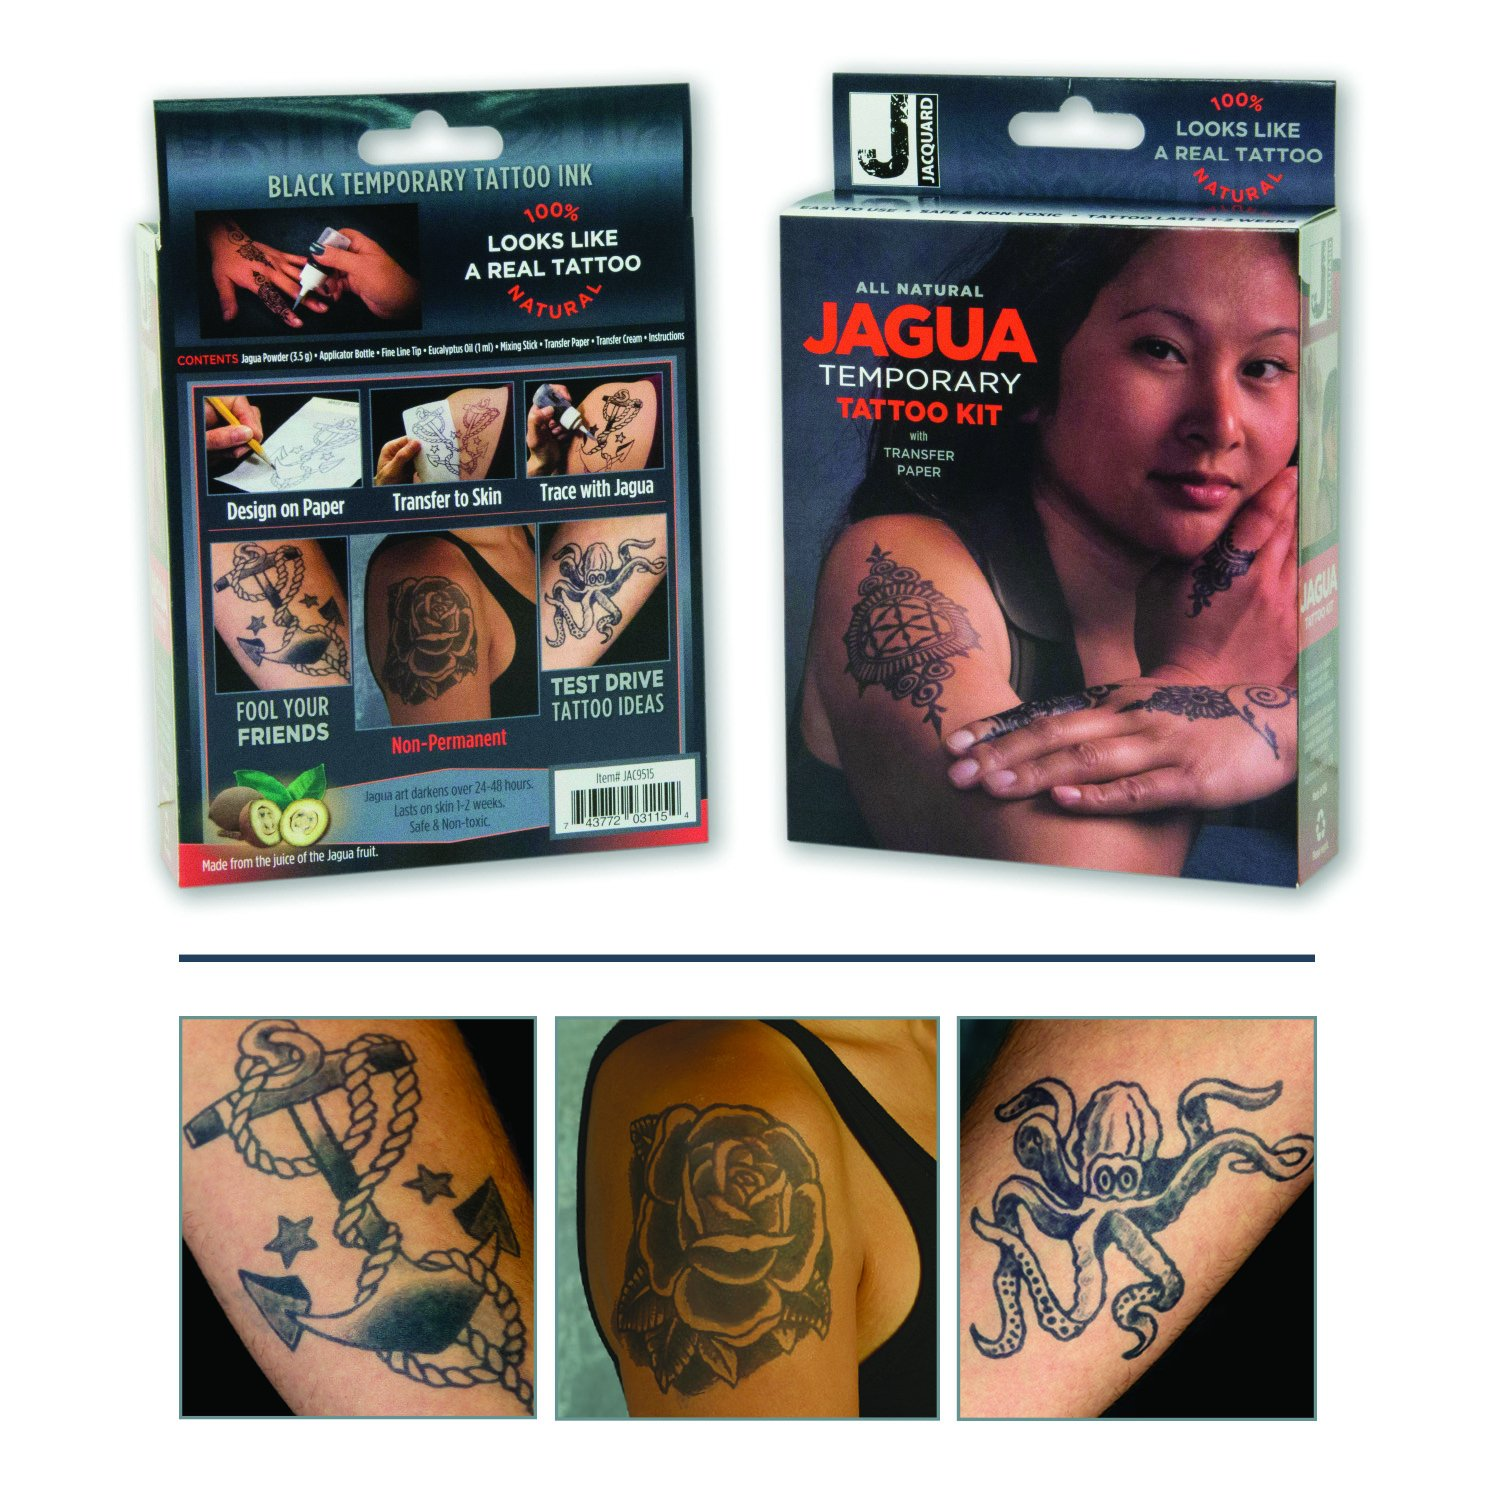 Jacquard Jagua Temporary with Transfer Paper Tattoo Kit (8 Piece) by Jacquard (Image #6)